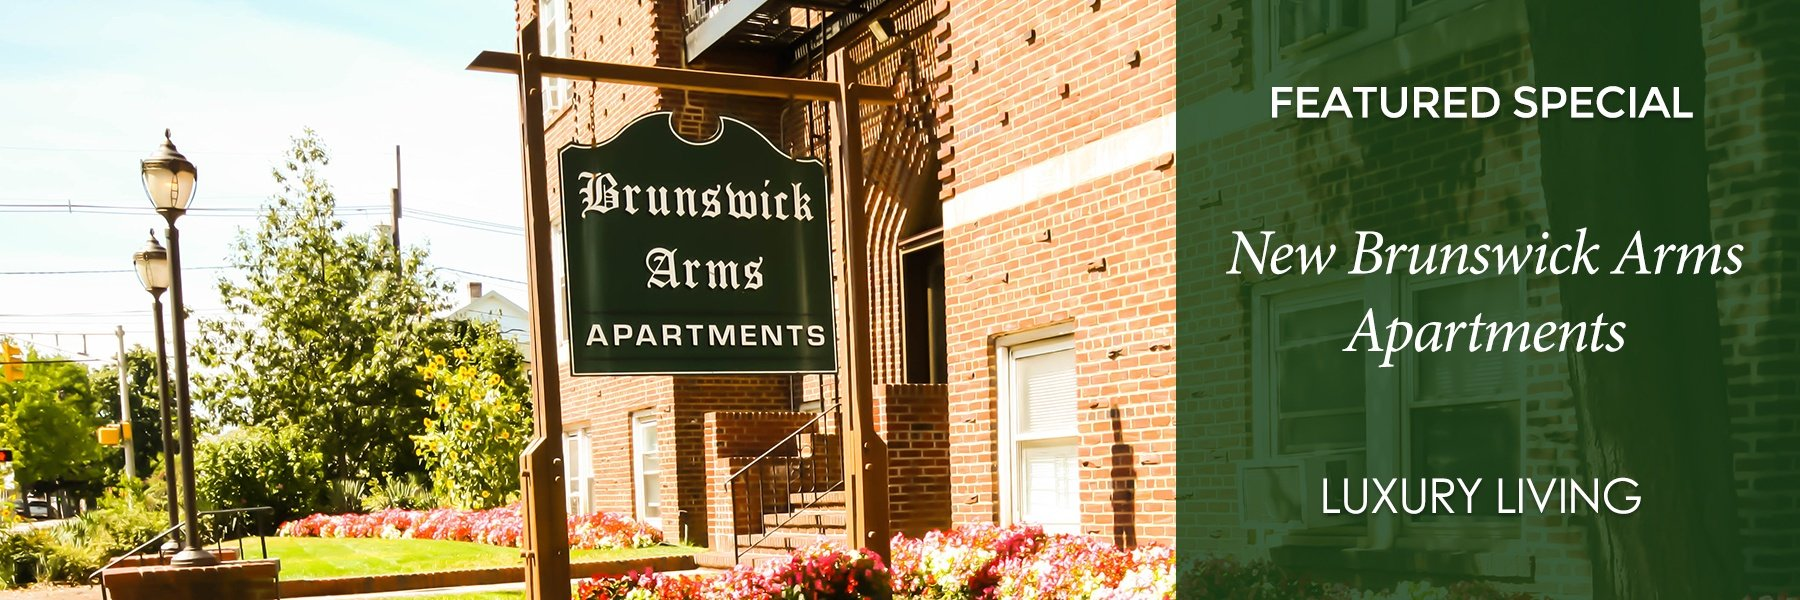 New Brunswick Arms Apartments For Rent in New Brunswick, NJ Specials